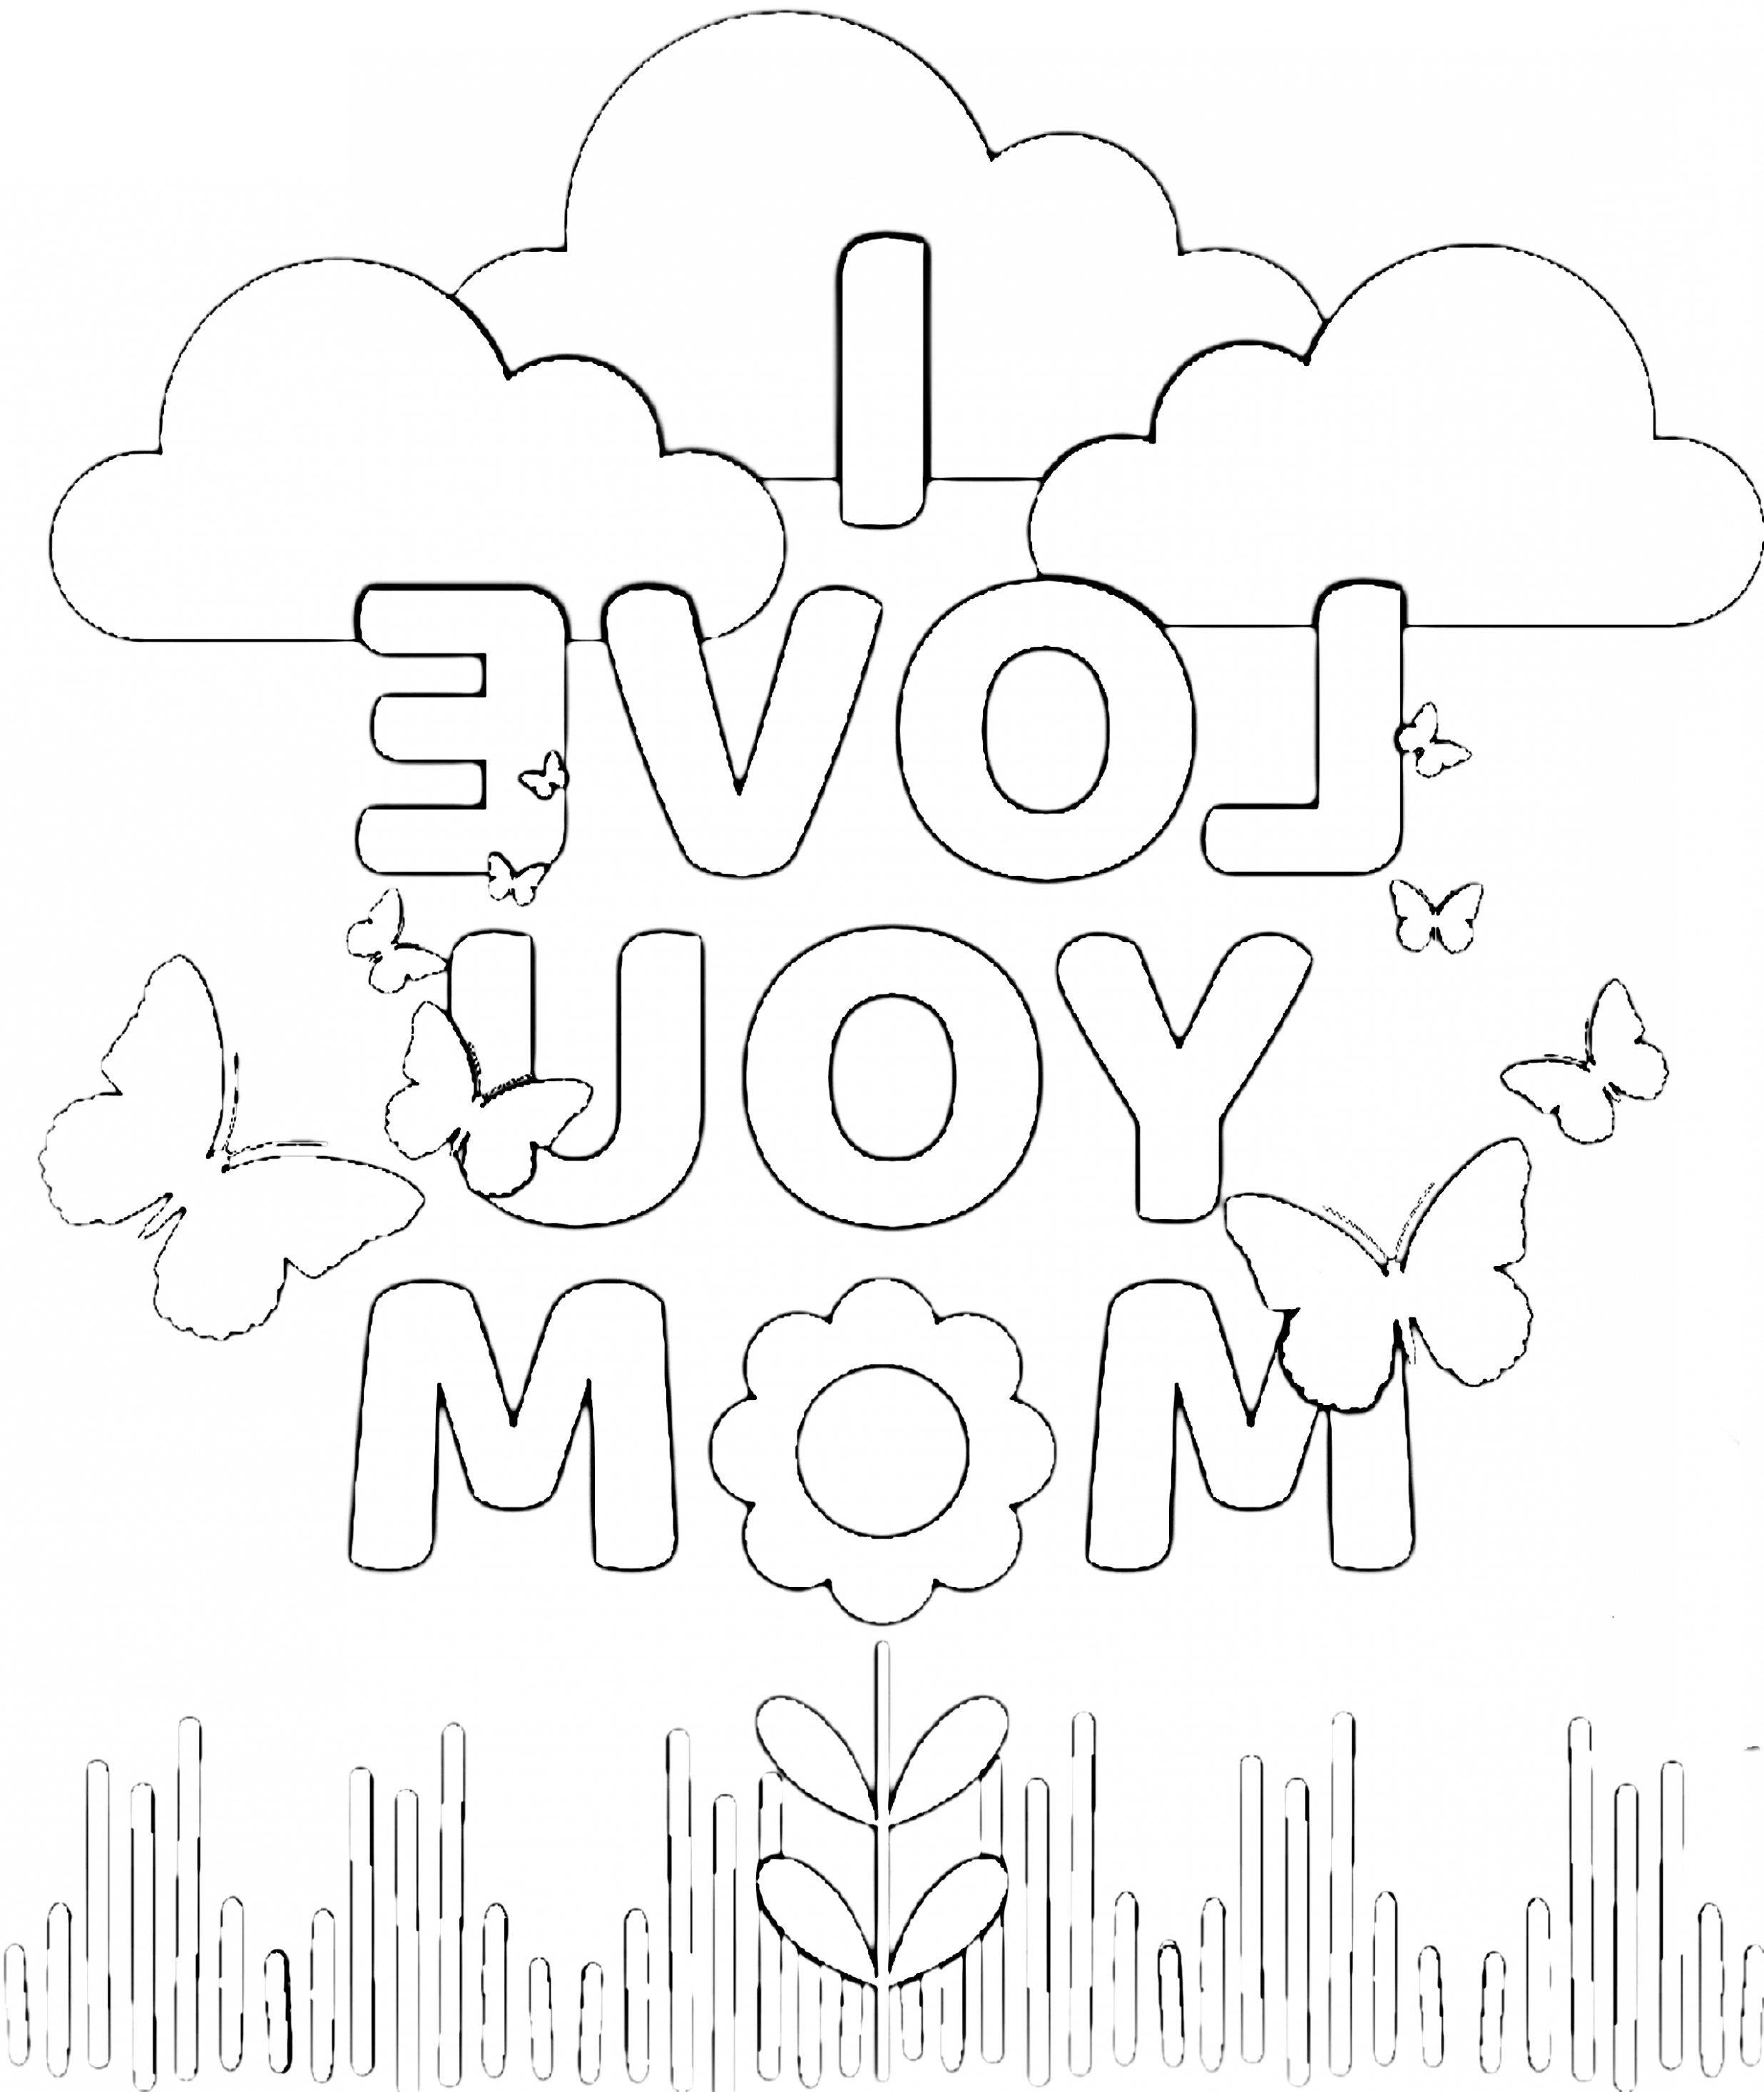 15 New Thoughts About Coloring Pages For Your Mom That Will Turn Your World Upside Dow Mom Coloring Pages Free Printable Birthday Cards Birthday Card Printable